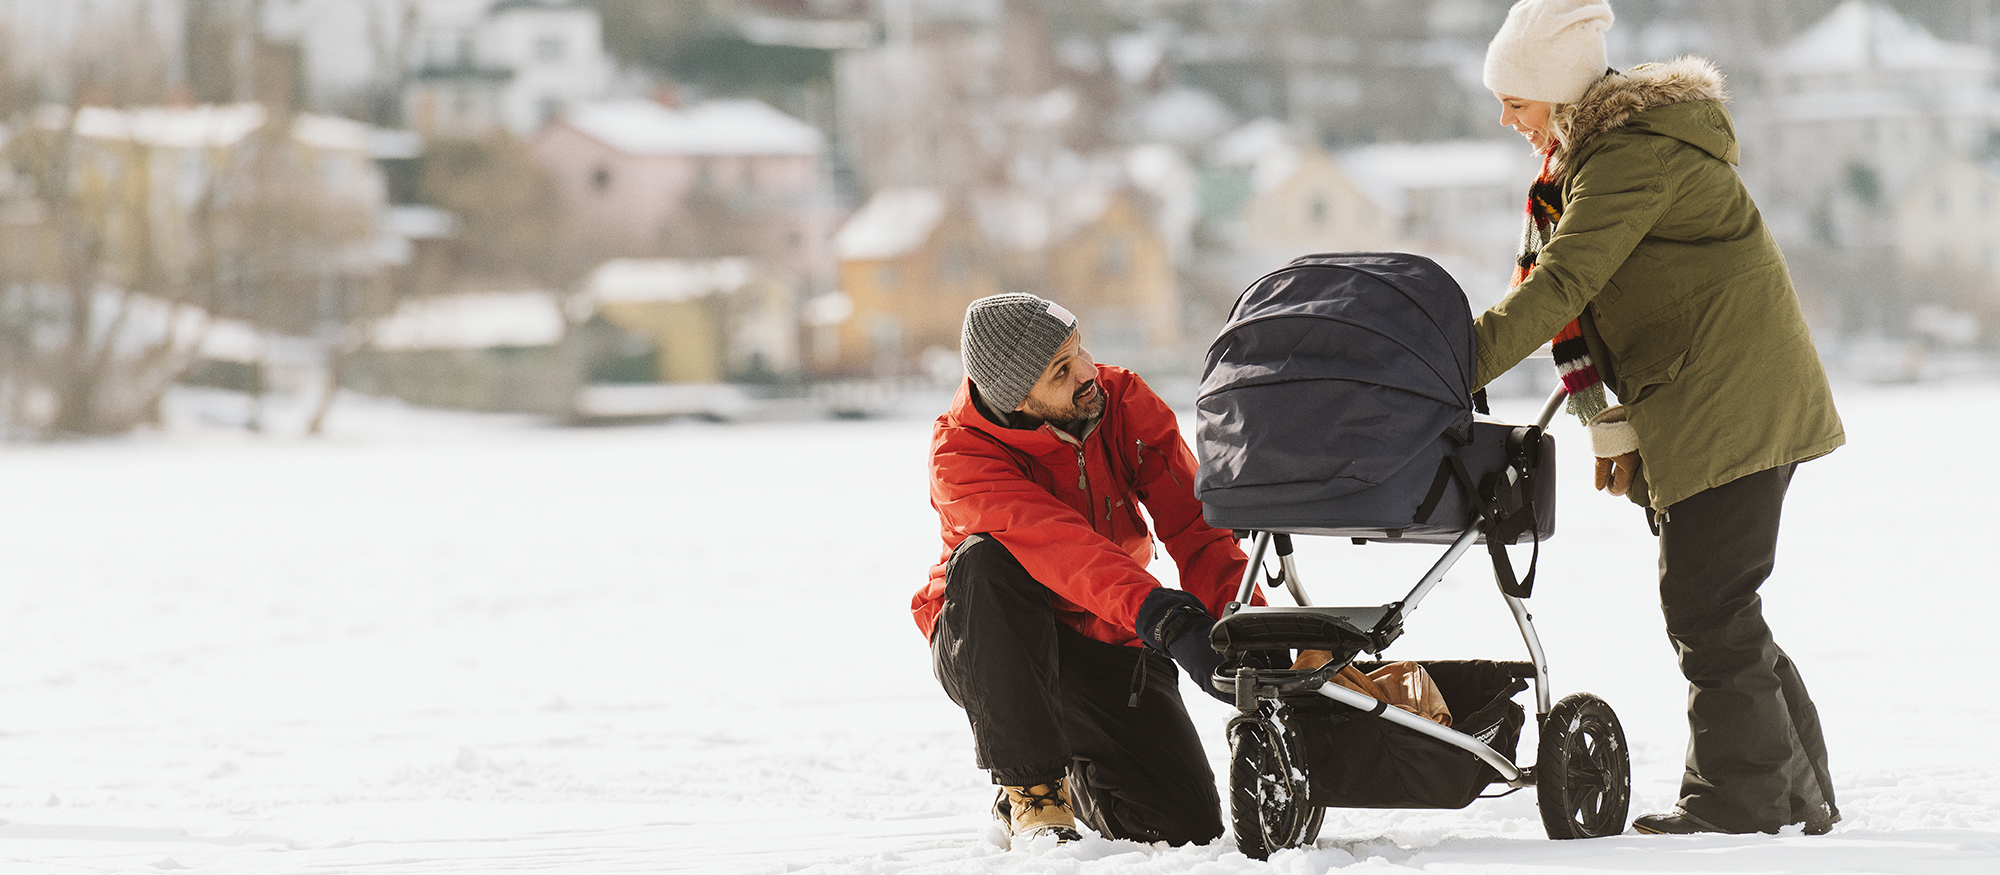 A winter walk with the stroller.